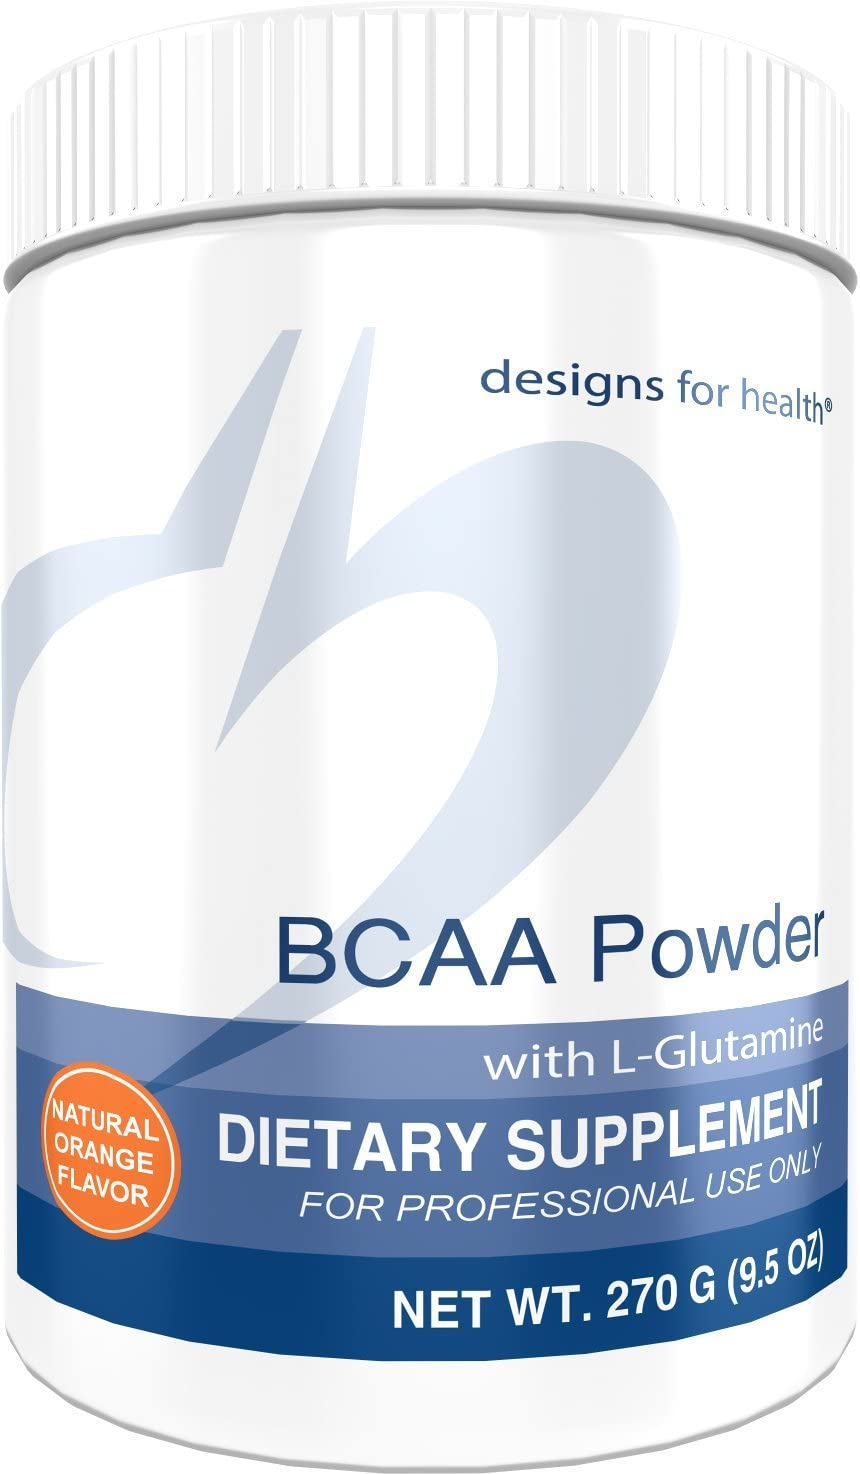 Designs for Health BCAA Powder with L-Glutamine – Branched Chain Amino Acids L-Glutamine for Energy Support 30 Servings 270g